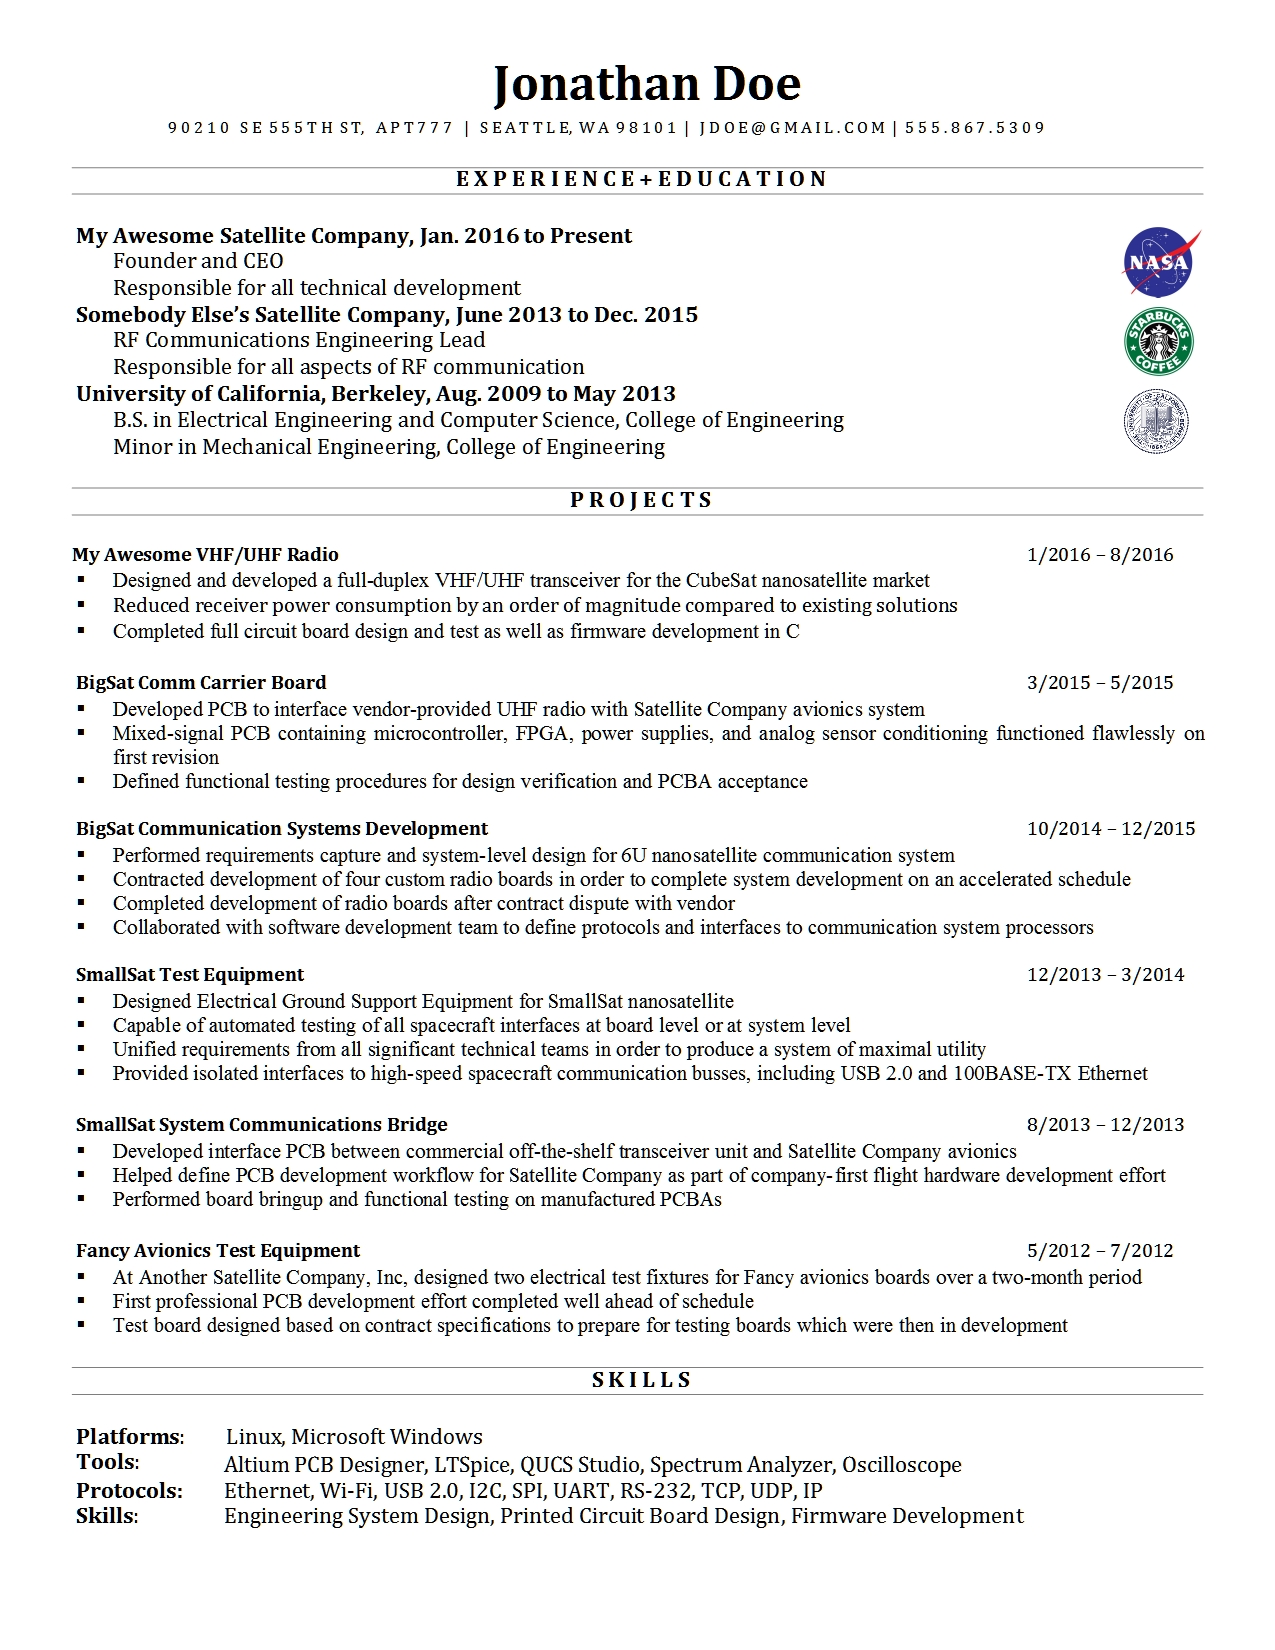 Resume Advice For Mid-Career Electrical Engineer : Resumes